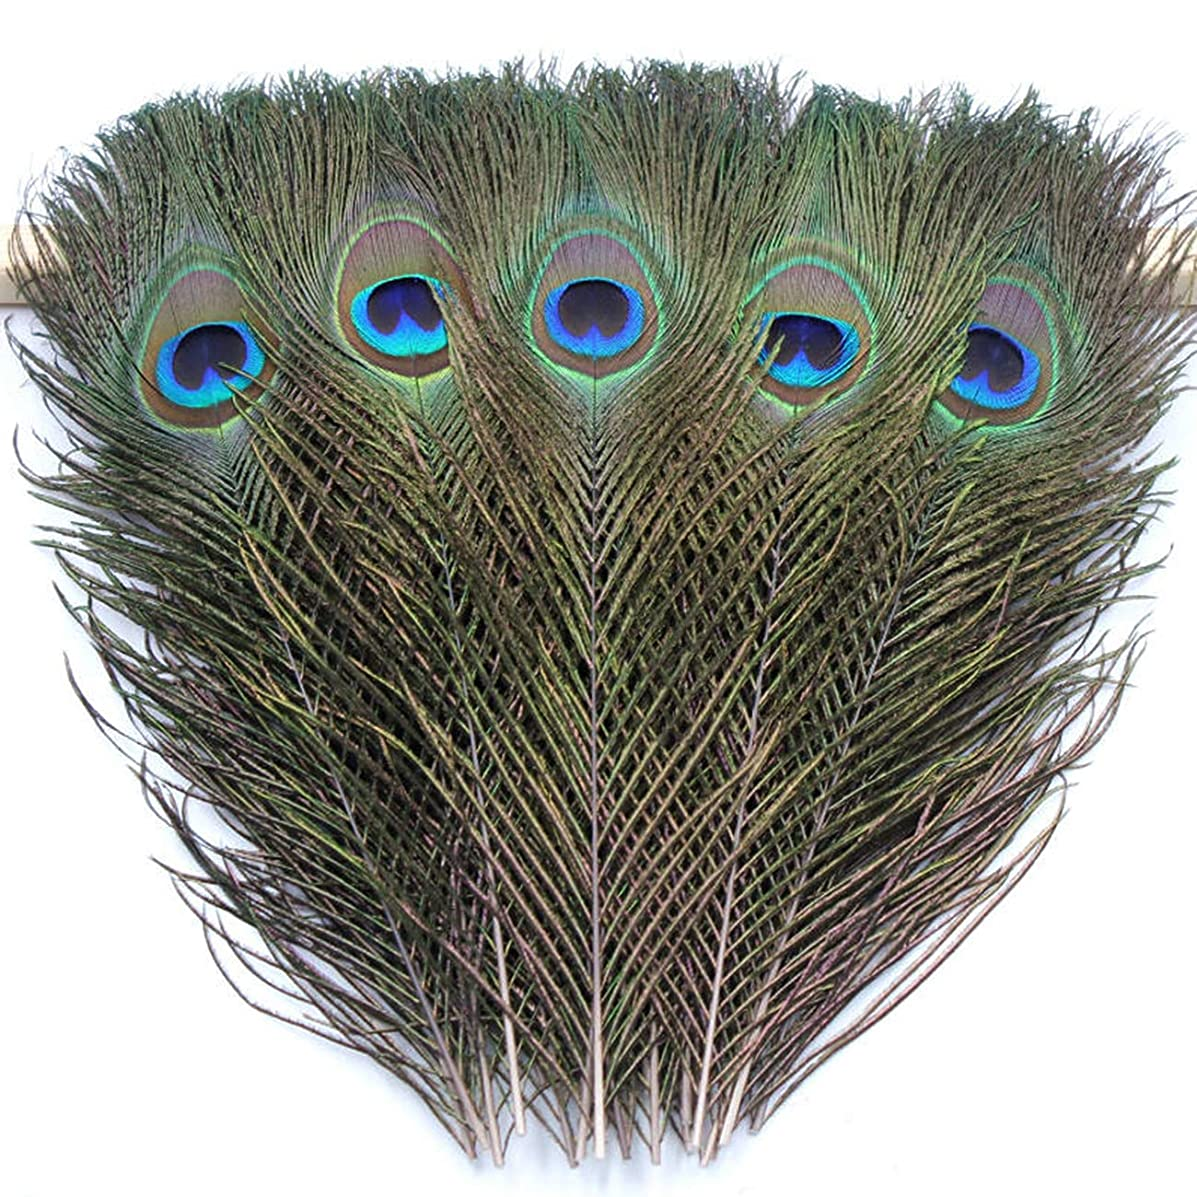 TinaWood Real Natural Peacock Eye Feathers 9.8-11.8 inch for DIY Craft, Wedding Holiday Decoration (20)